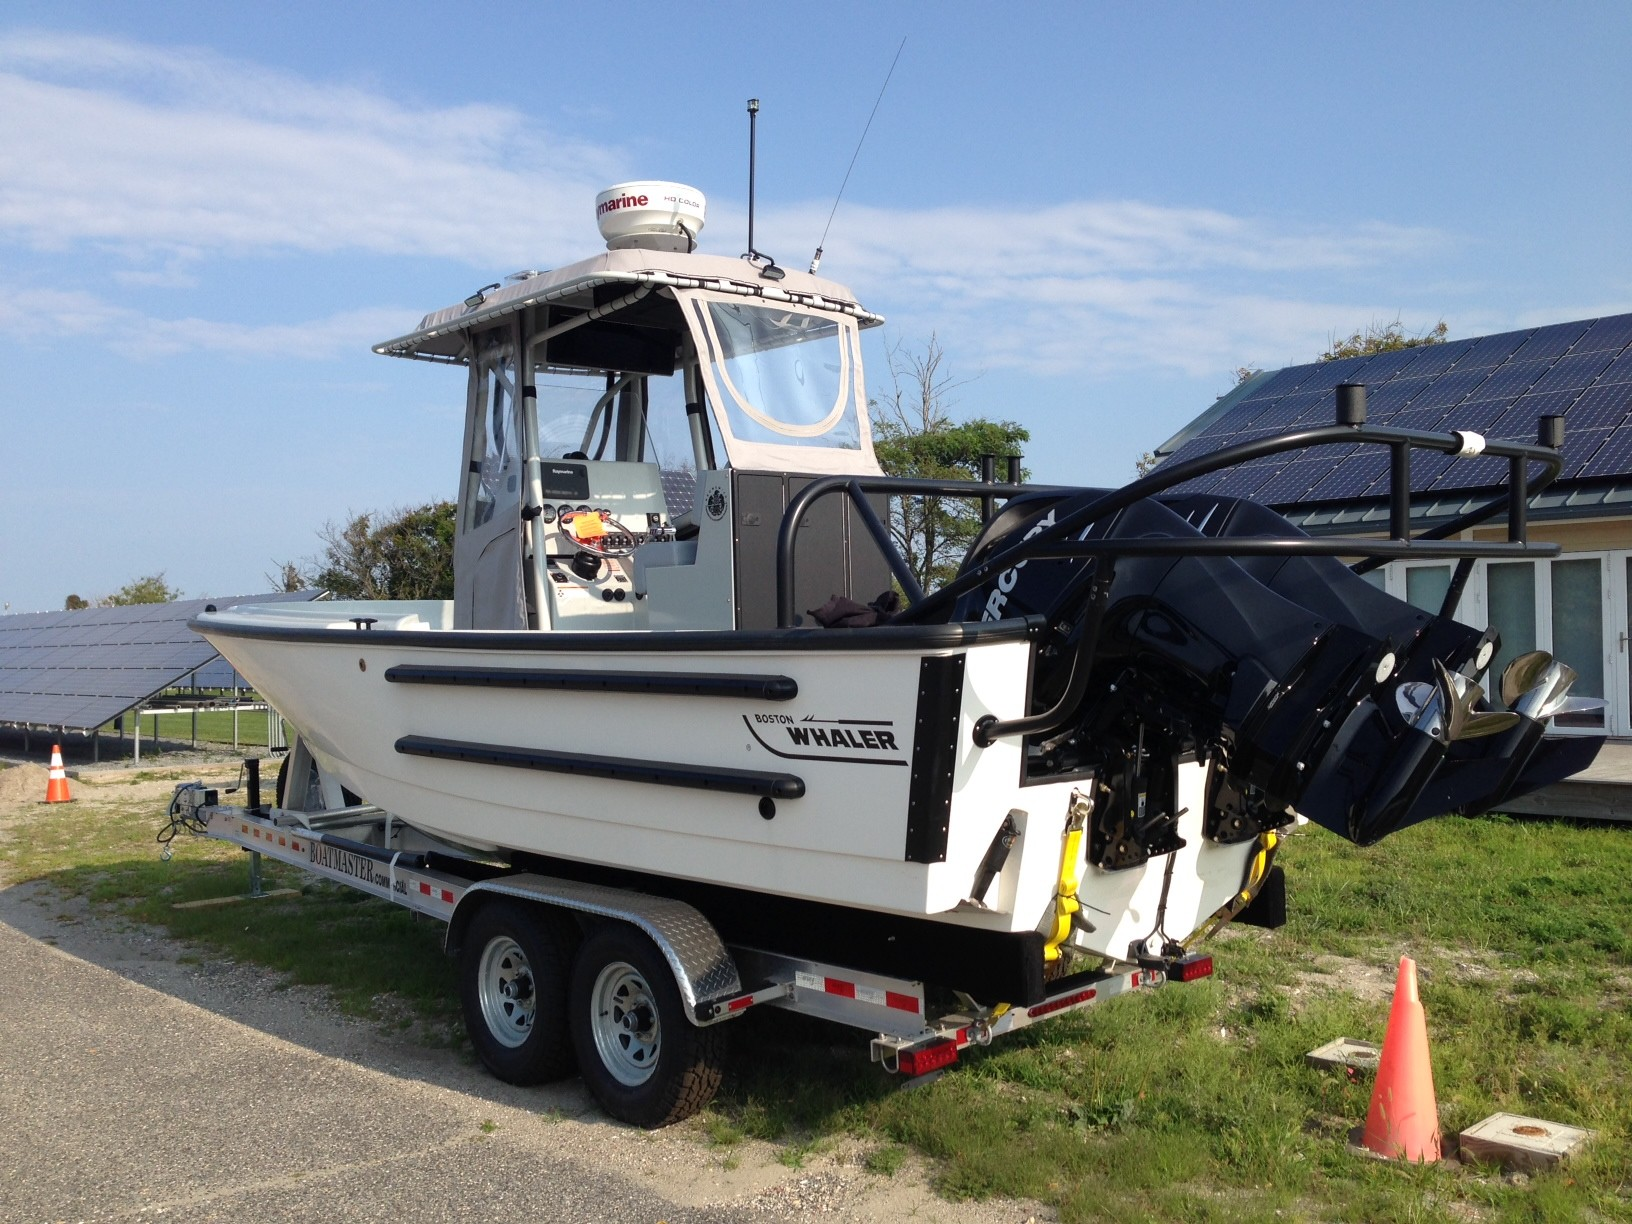 Six new patrol boats, one of which is pictured here, will be used to assist with marine law enforcement efforts on waterways throughout New York State.